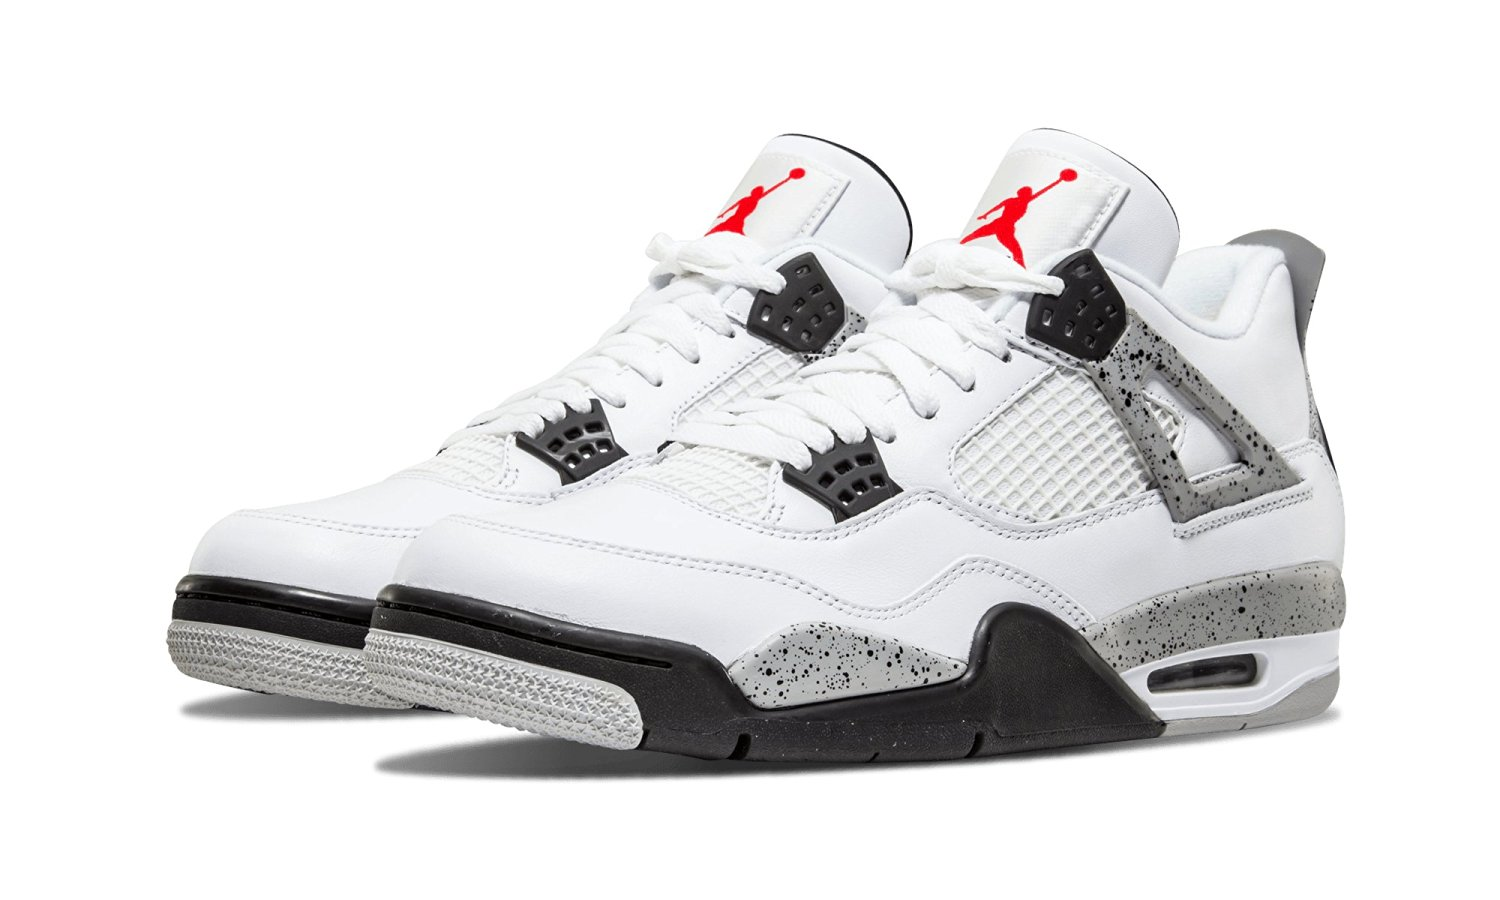 f2c06f133949bc Get Quotations · AIR JORDAN 4 RETRO OG  WHITE CEMENT 2016 RELEASE  -  840606-192